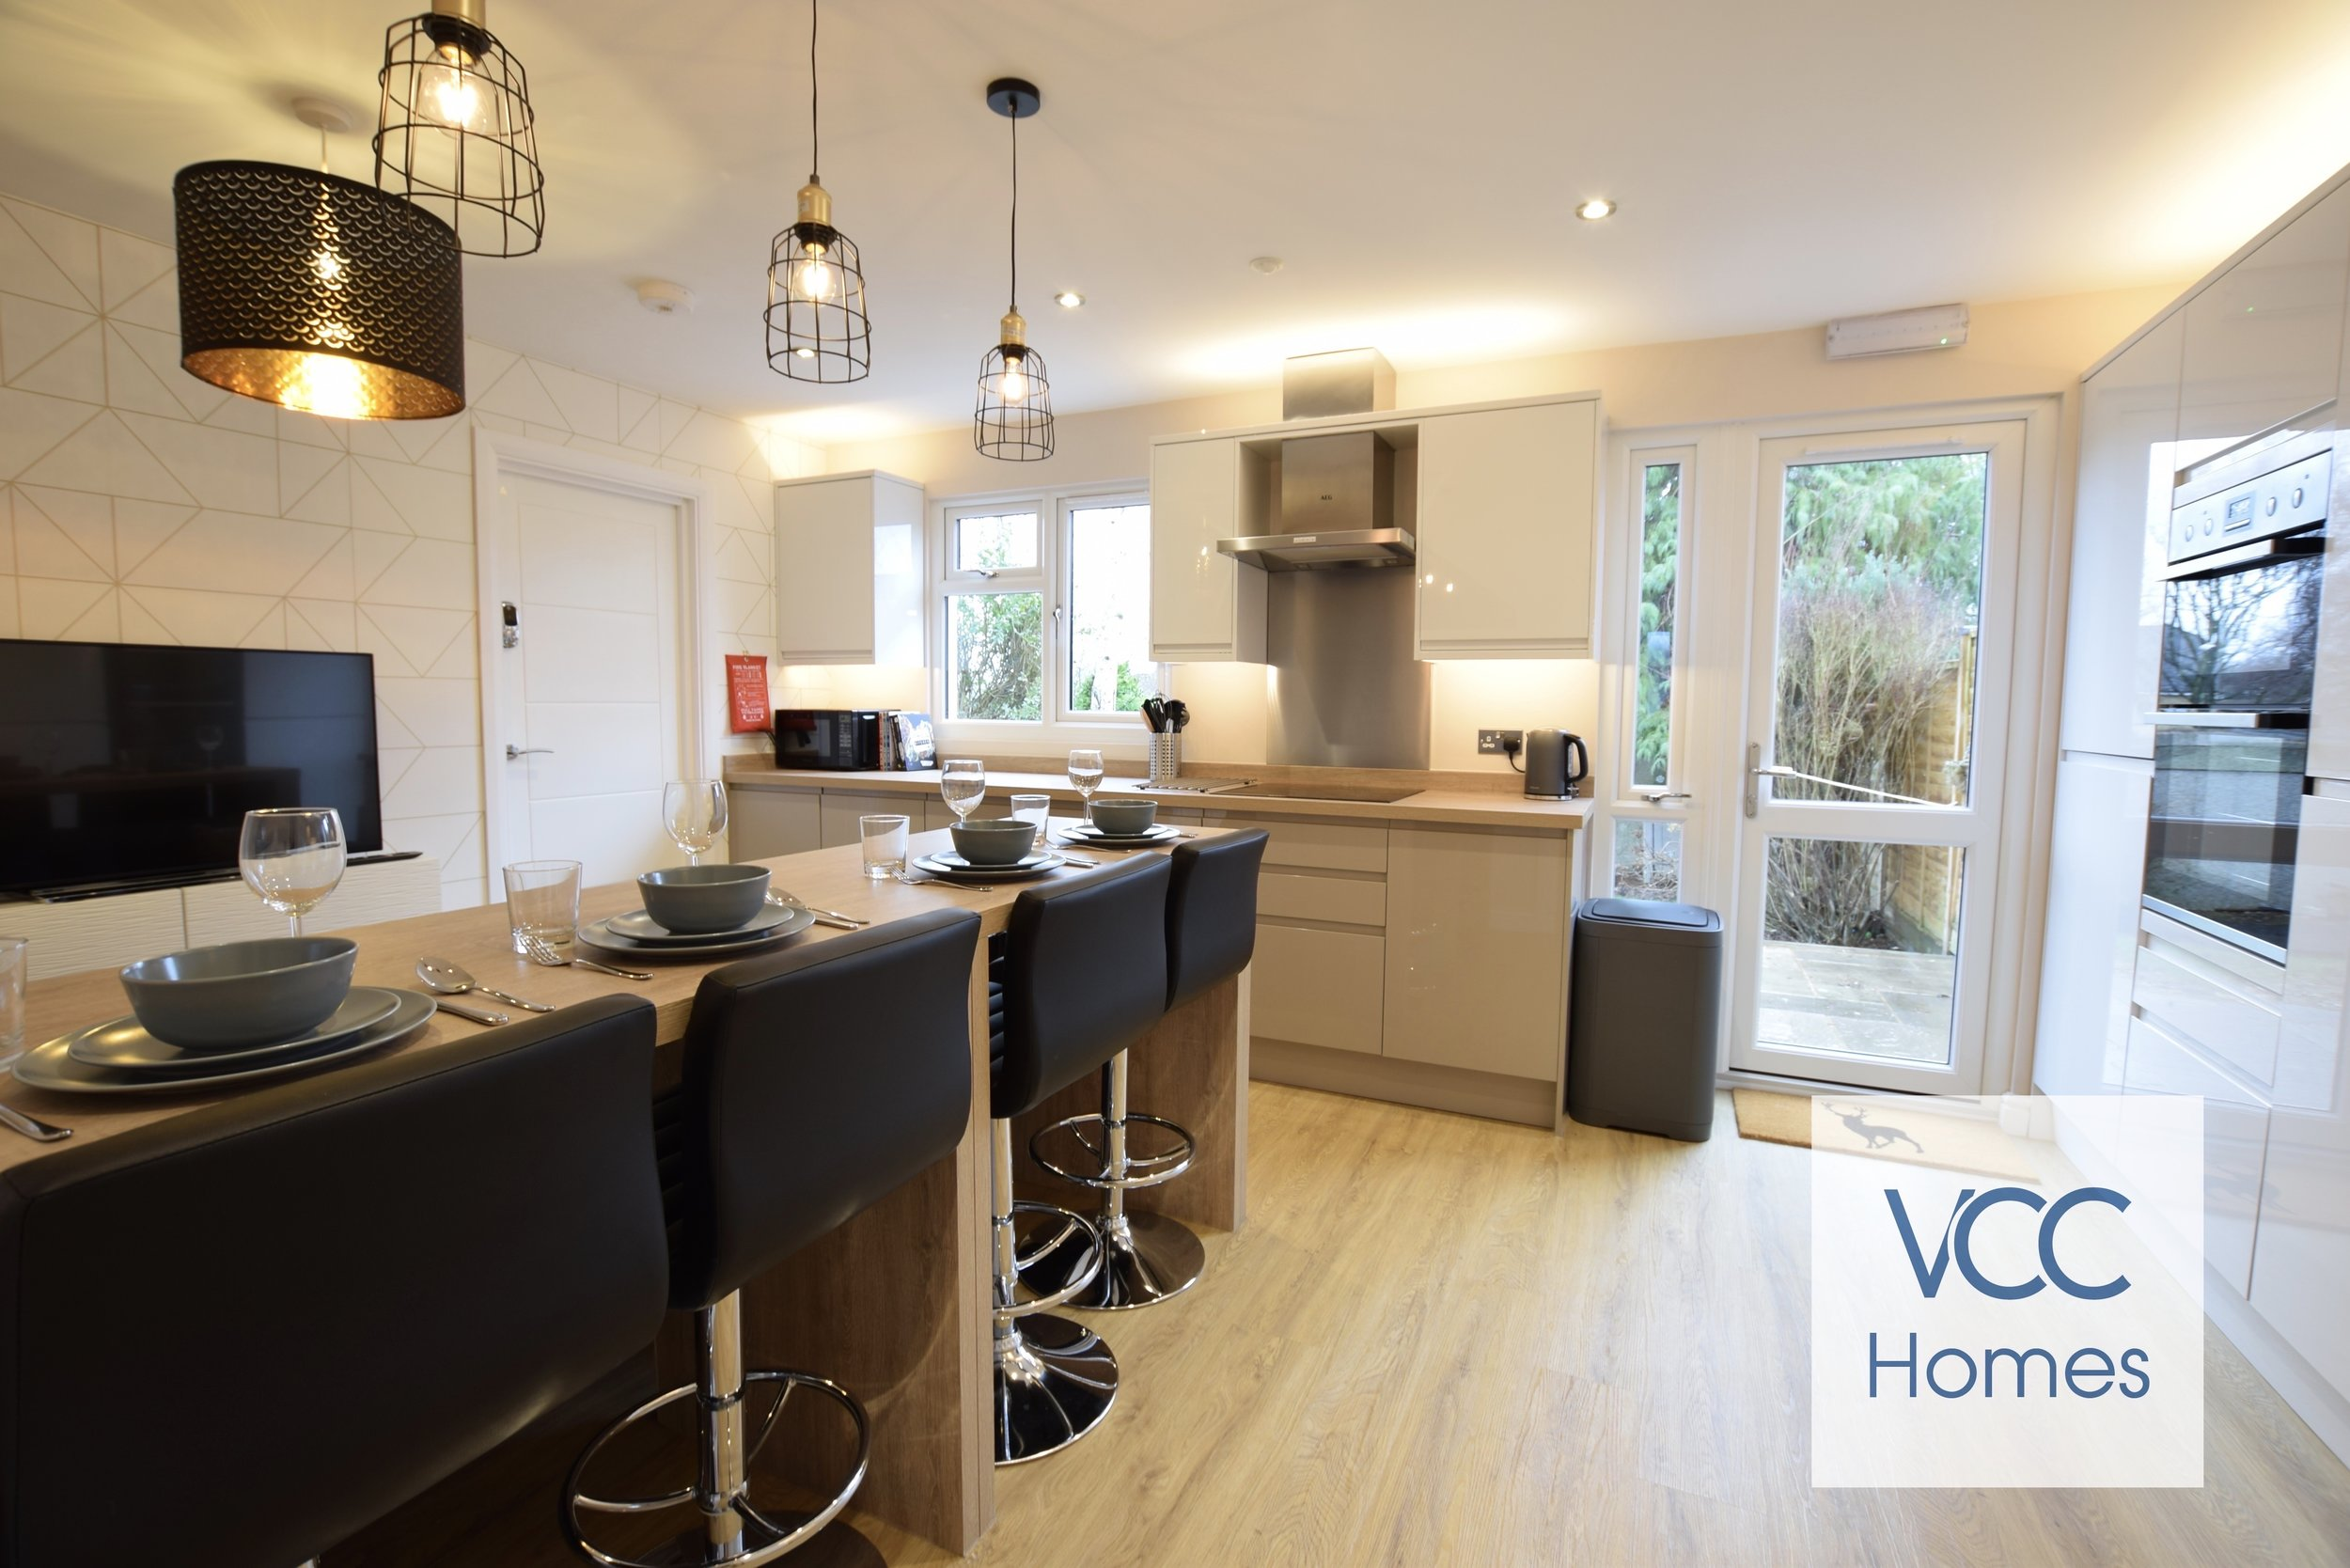 Service levels to suit you - We understand that every landlord has different circumstances, which is why we offer a variety of service options for you to choose from, to suit you and your portfolio best. One of our team will be happy to discuss your requirements and how we can best suit you.